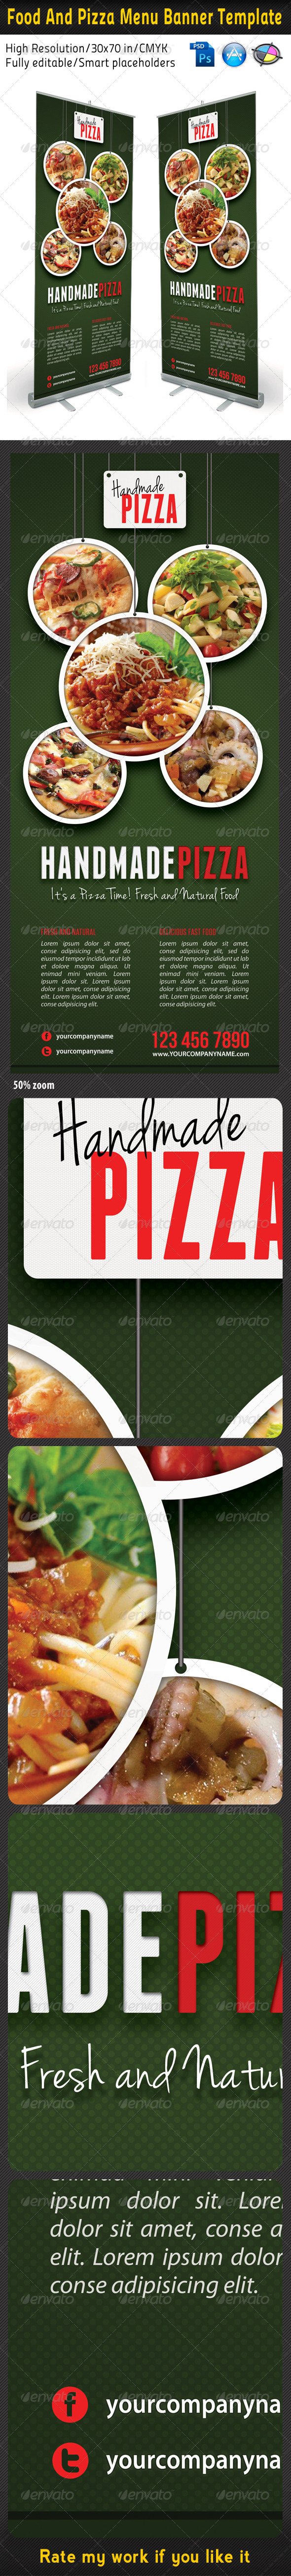 Food And Pizza Menu Banner Template 03